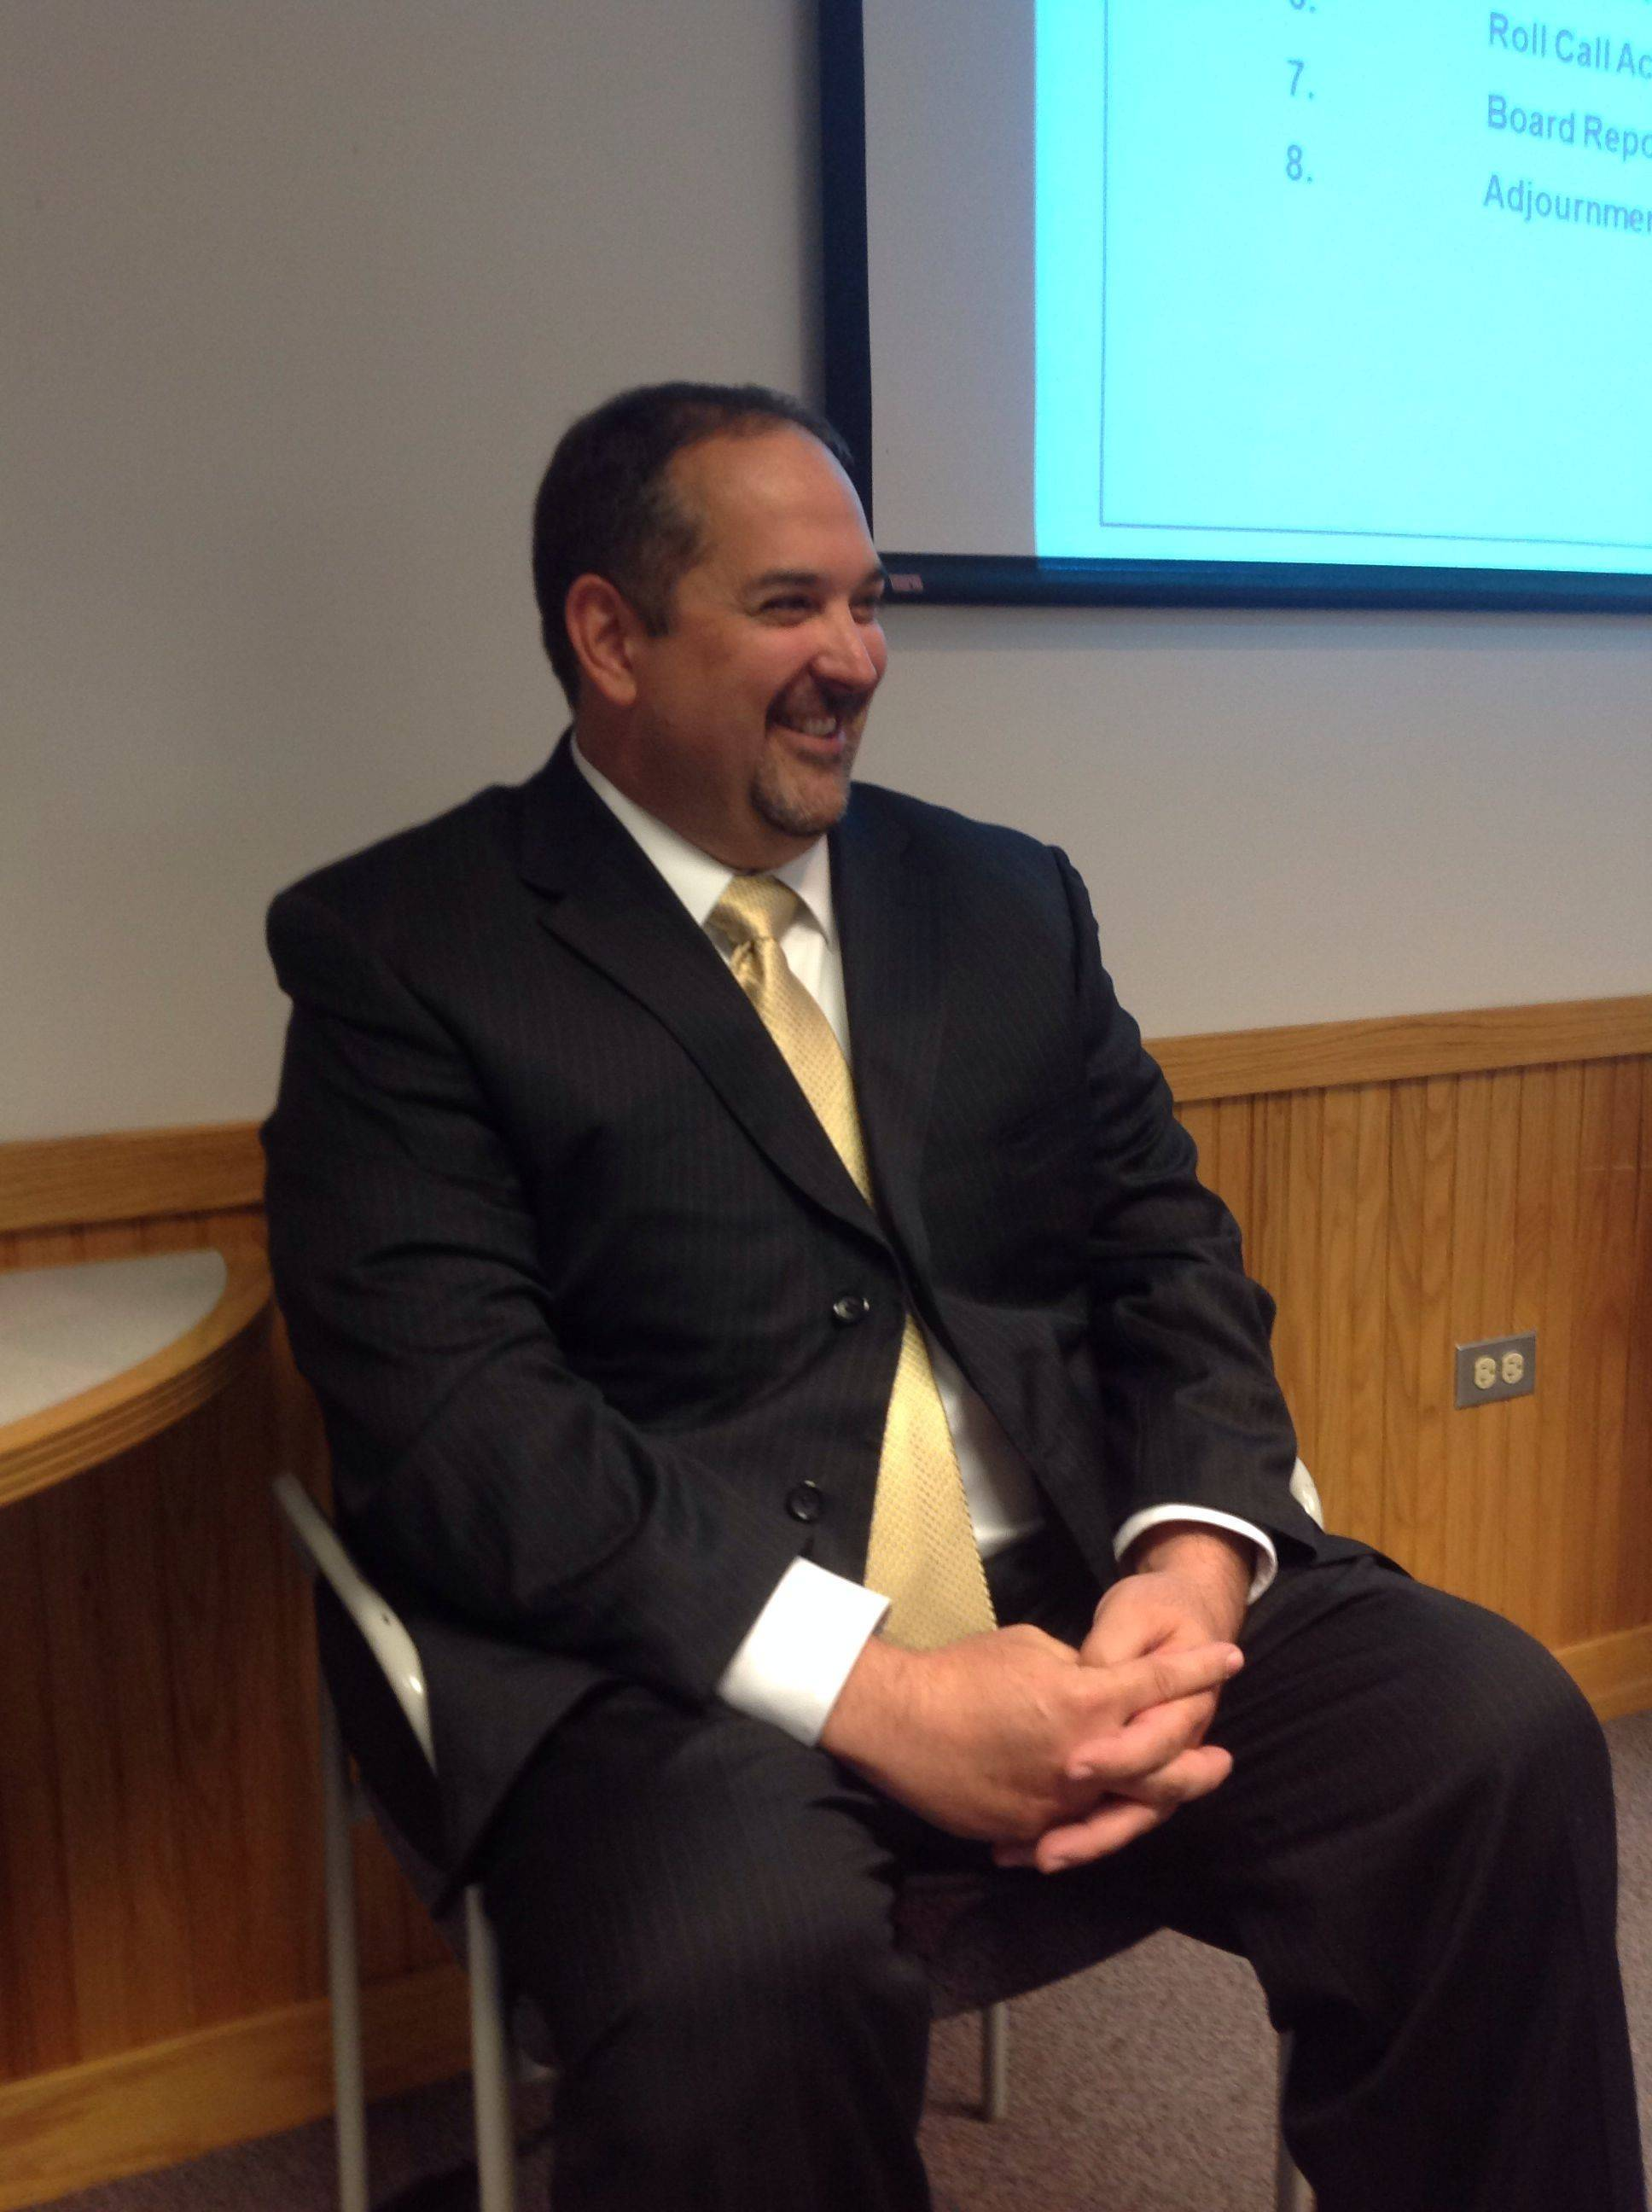 Fred Heid, the next superintendent of Community Unit District 300, smiles Wednesday after the school board approves his employment contract. Heid, 43, can't take over as superintendent until the state verifies his credentials. He will work as chief executive officer while the district's former superintendent, Ken Arndt, serves as interim superintendent.